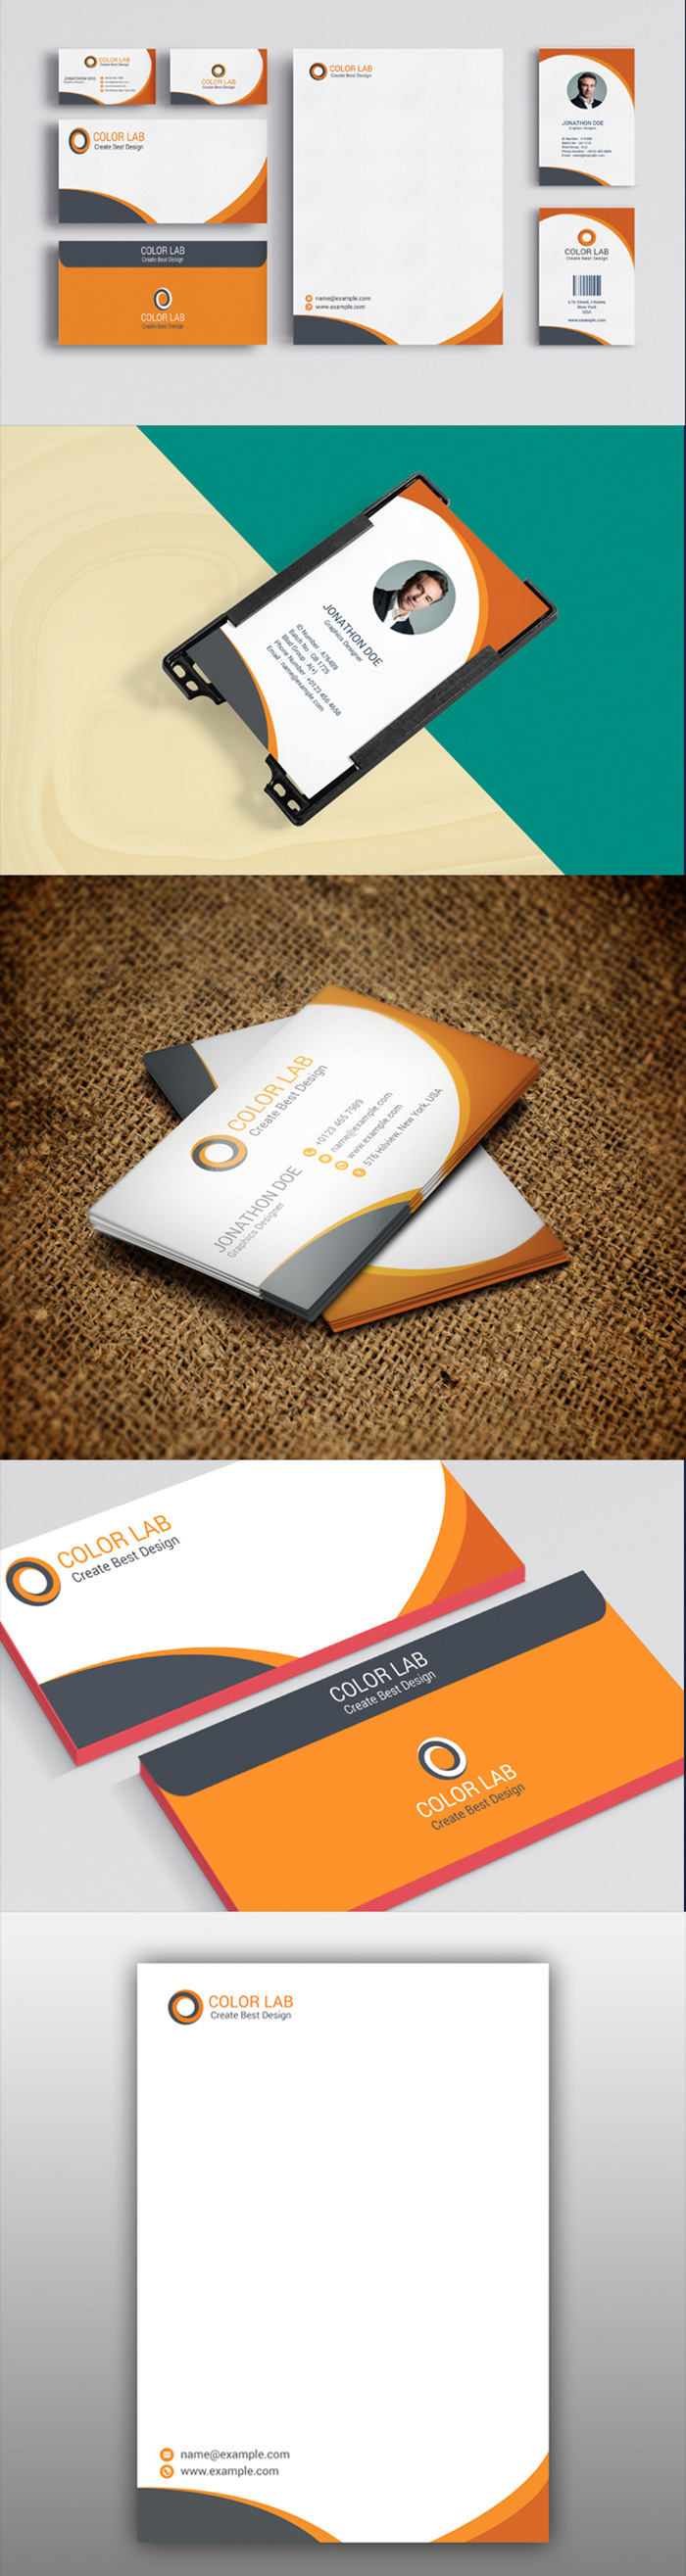 50 Corporate Identities with Extended License - 2